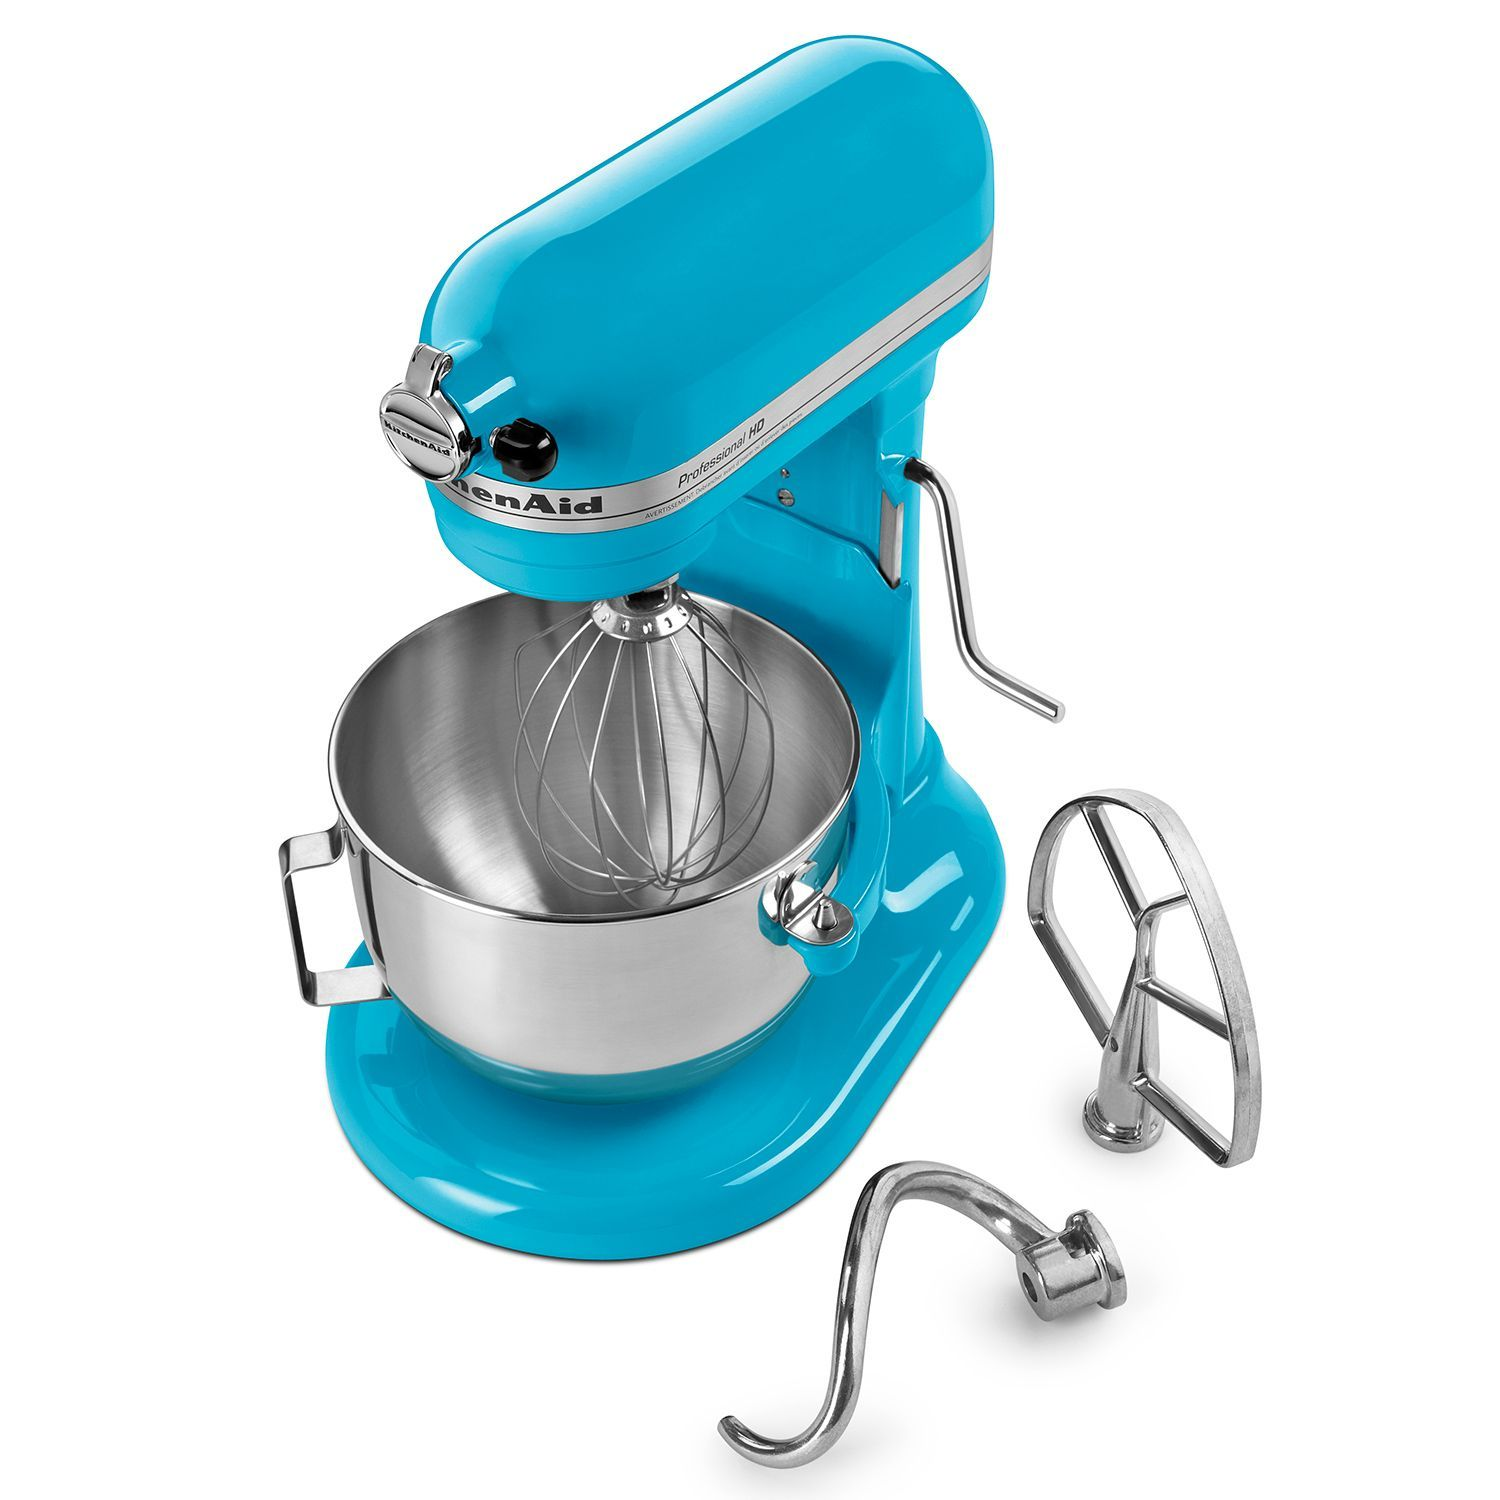 KitchenAid® Professional 5™ Plus 5 Quart Bowl-Lift Stand ...